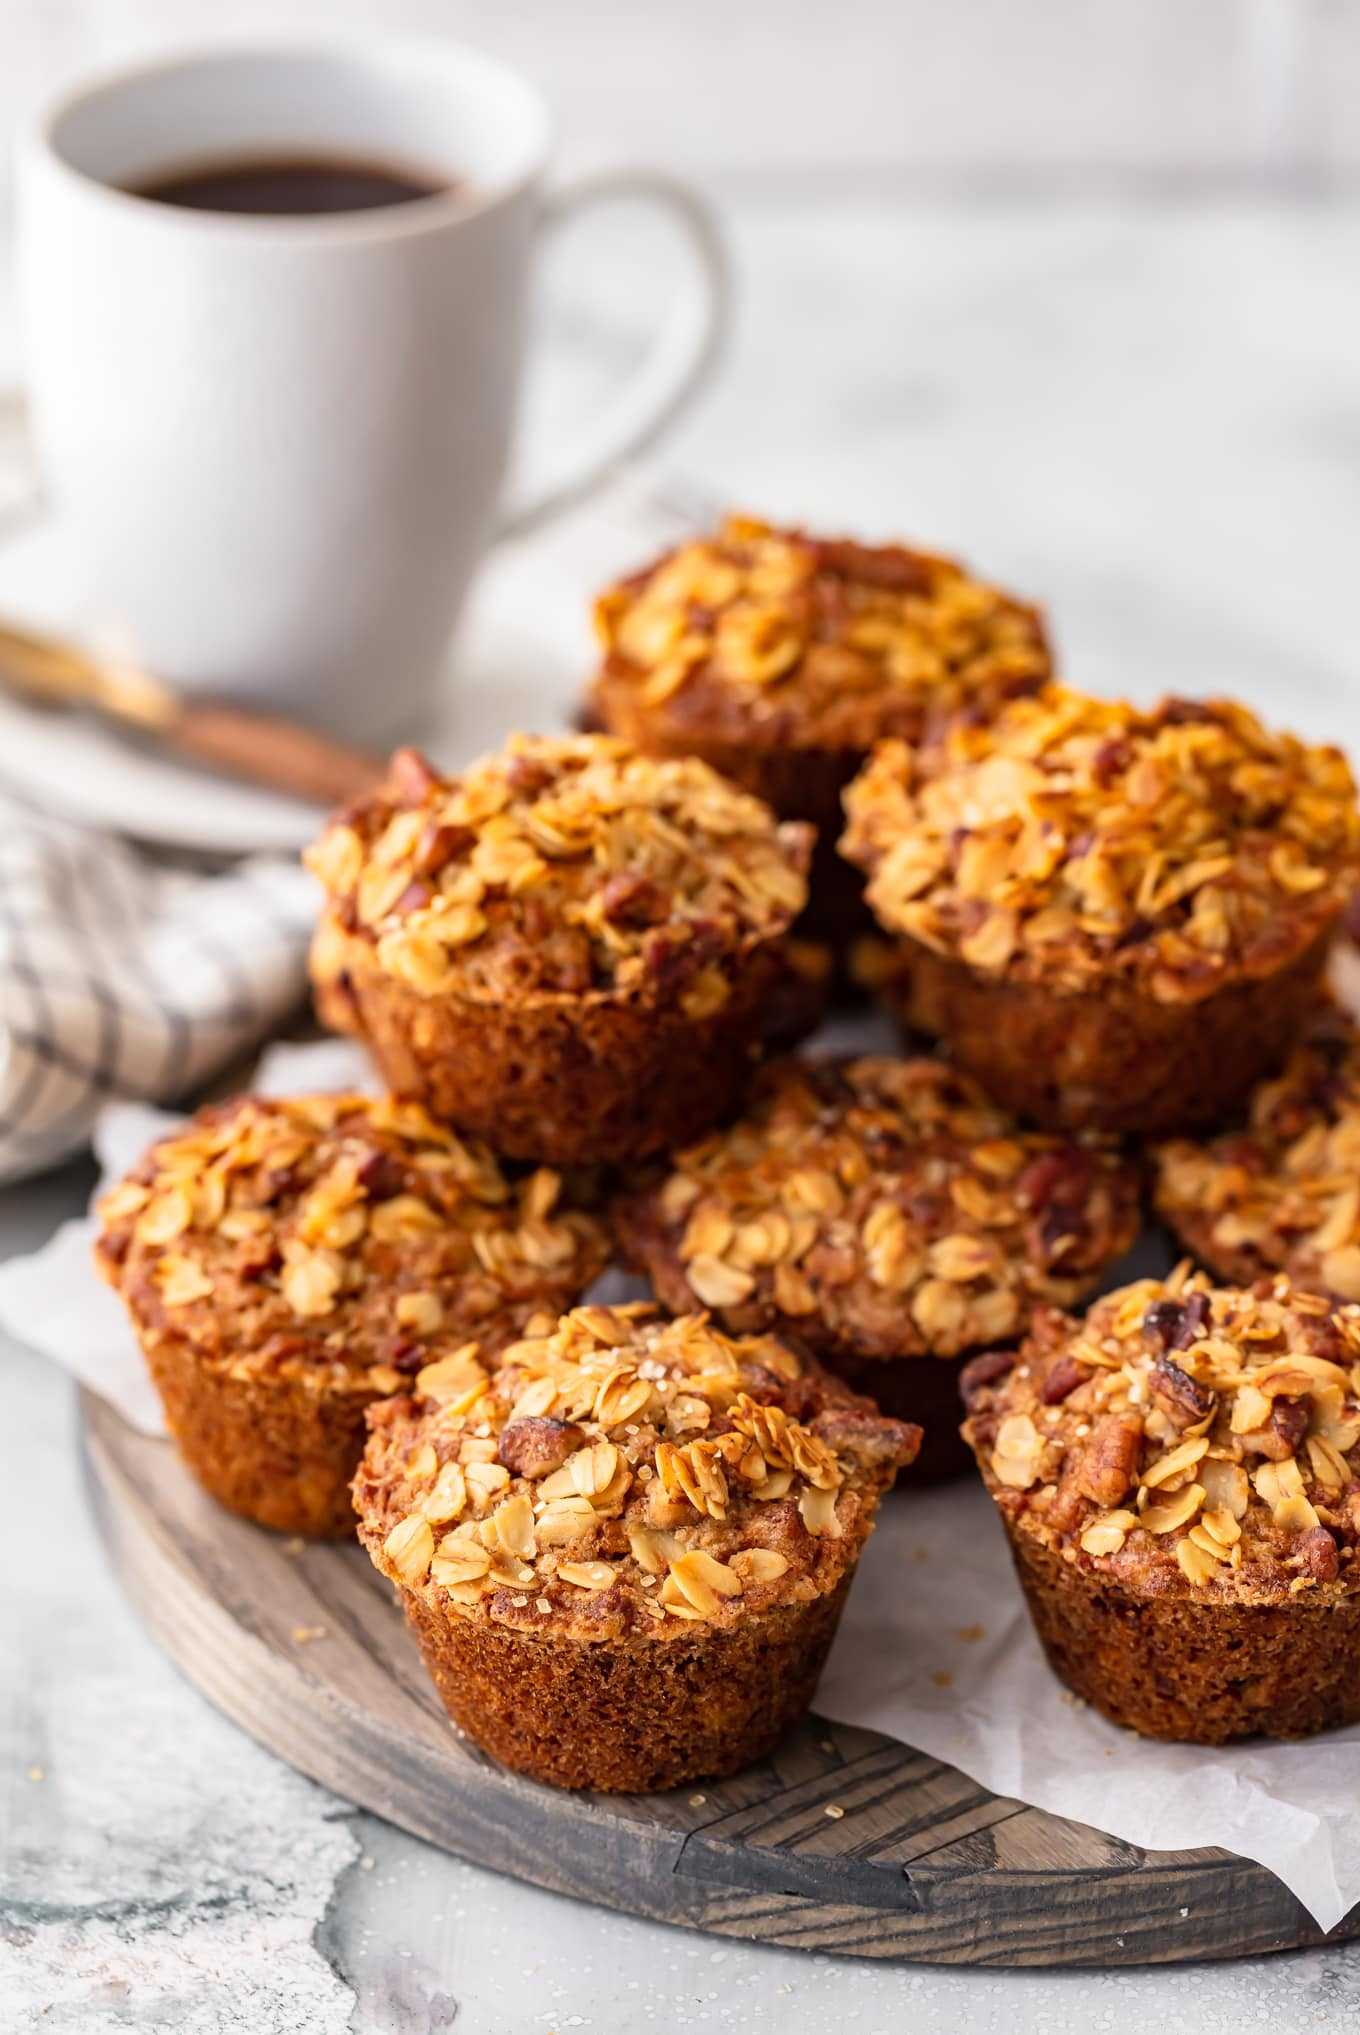 breakfast muffins arranged in a stack, next to a cup of coffee